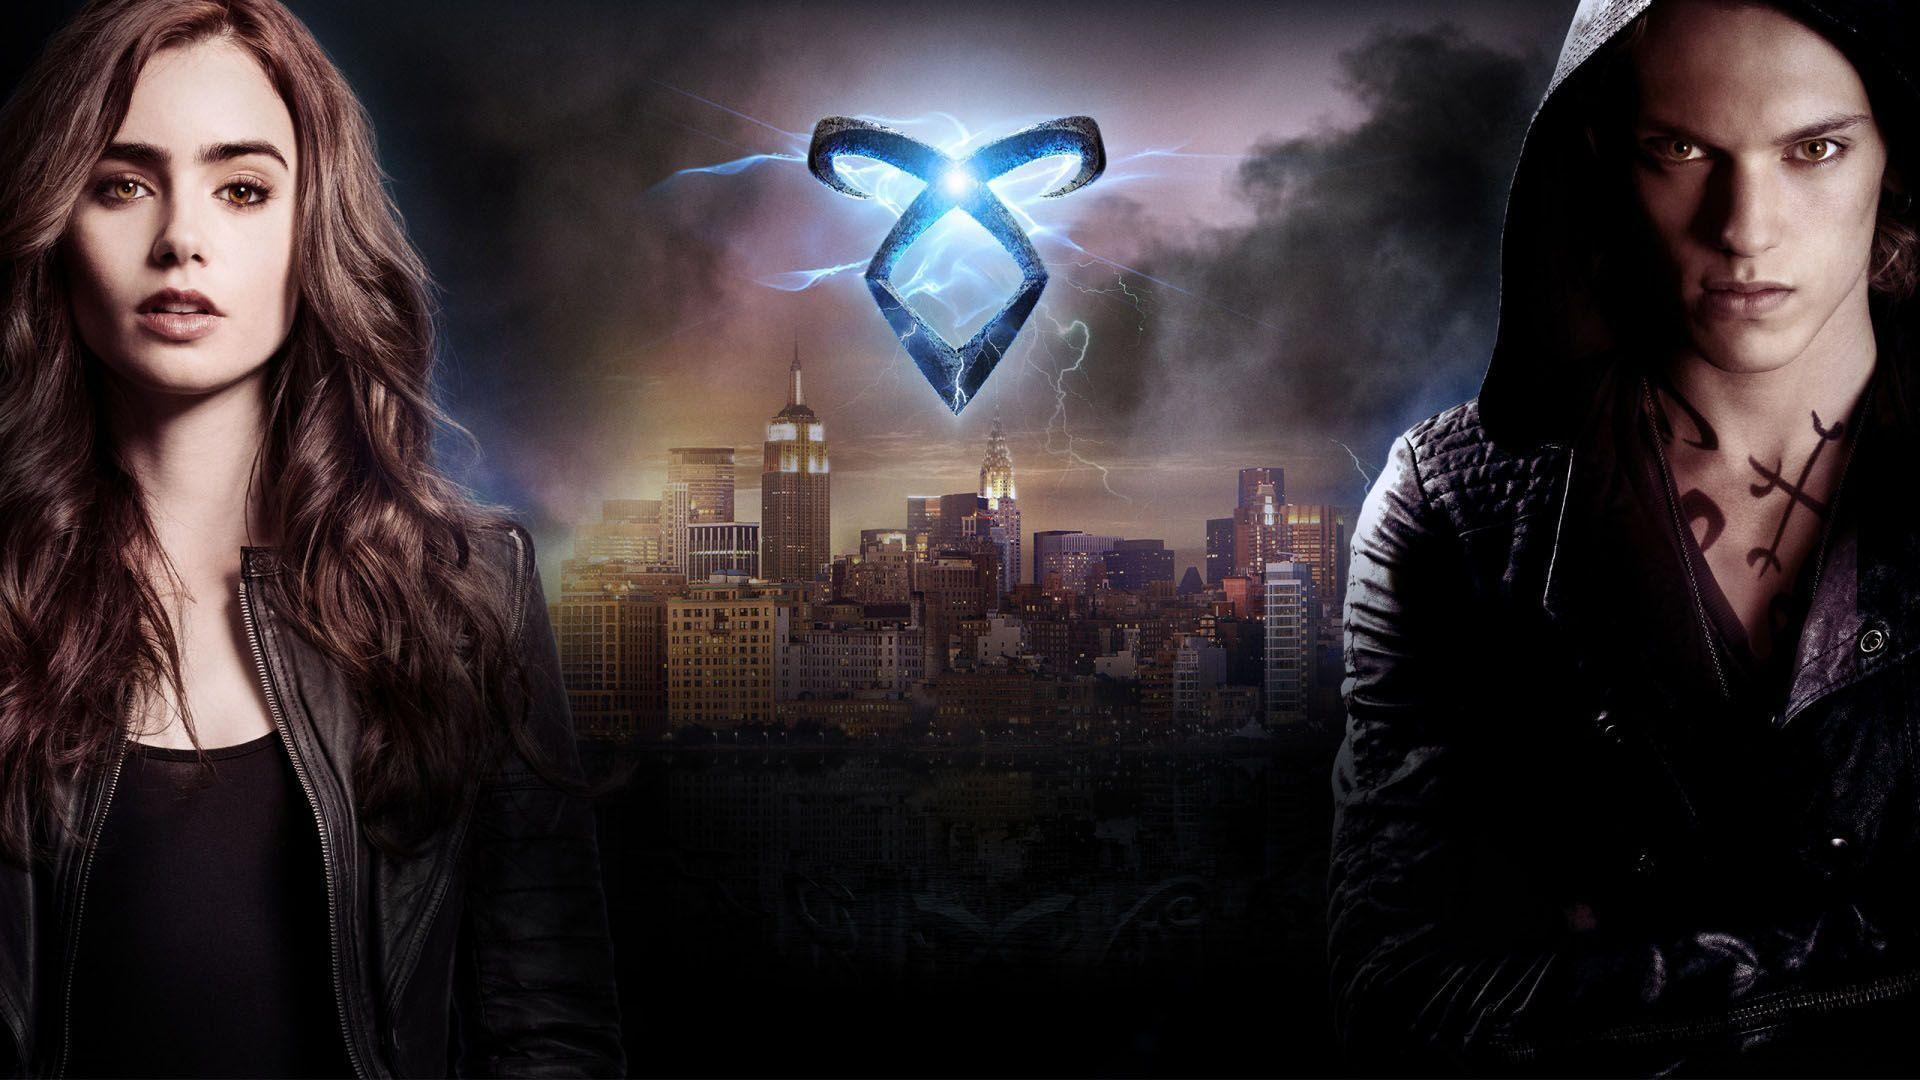 the mortal instruments wallpapers - wallpaper cave